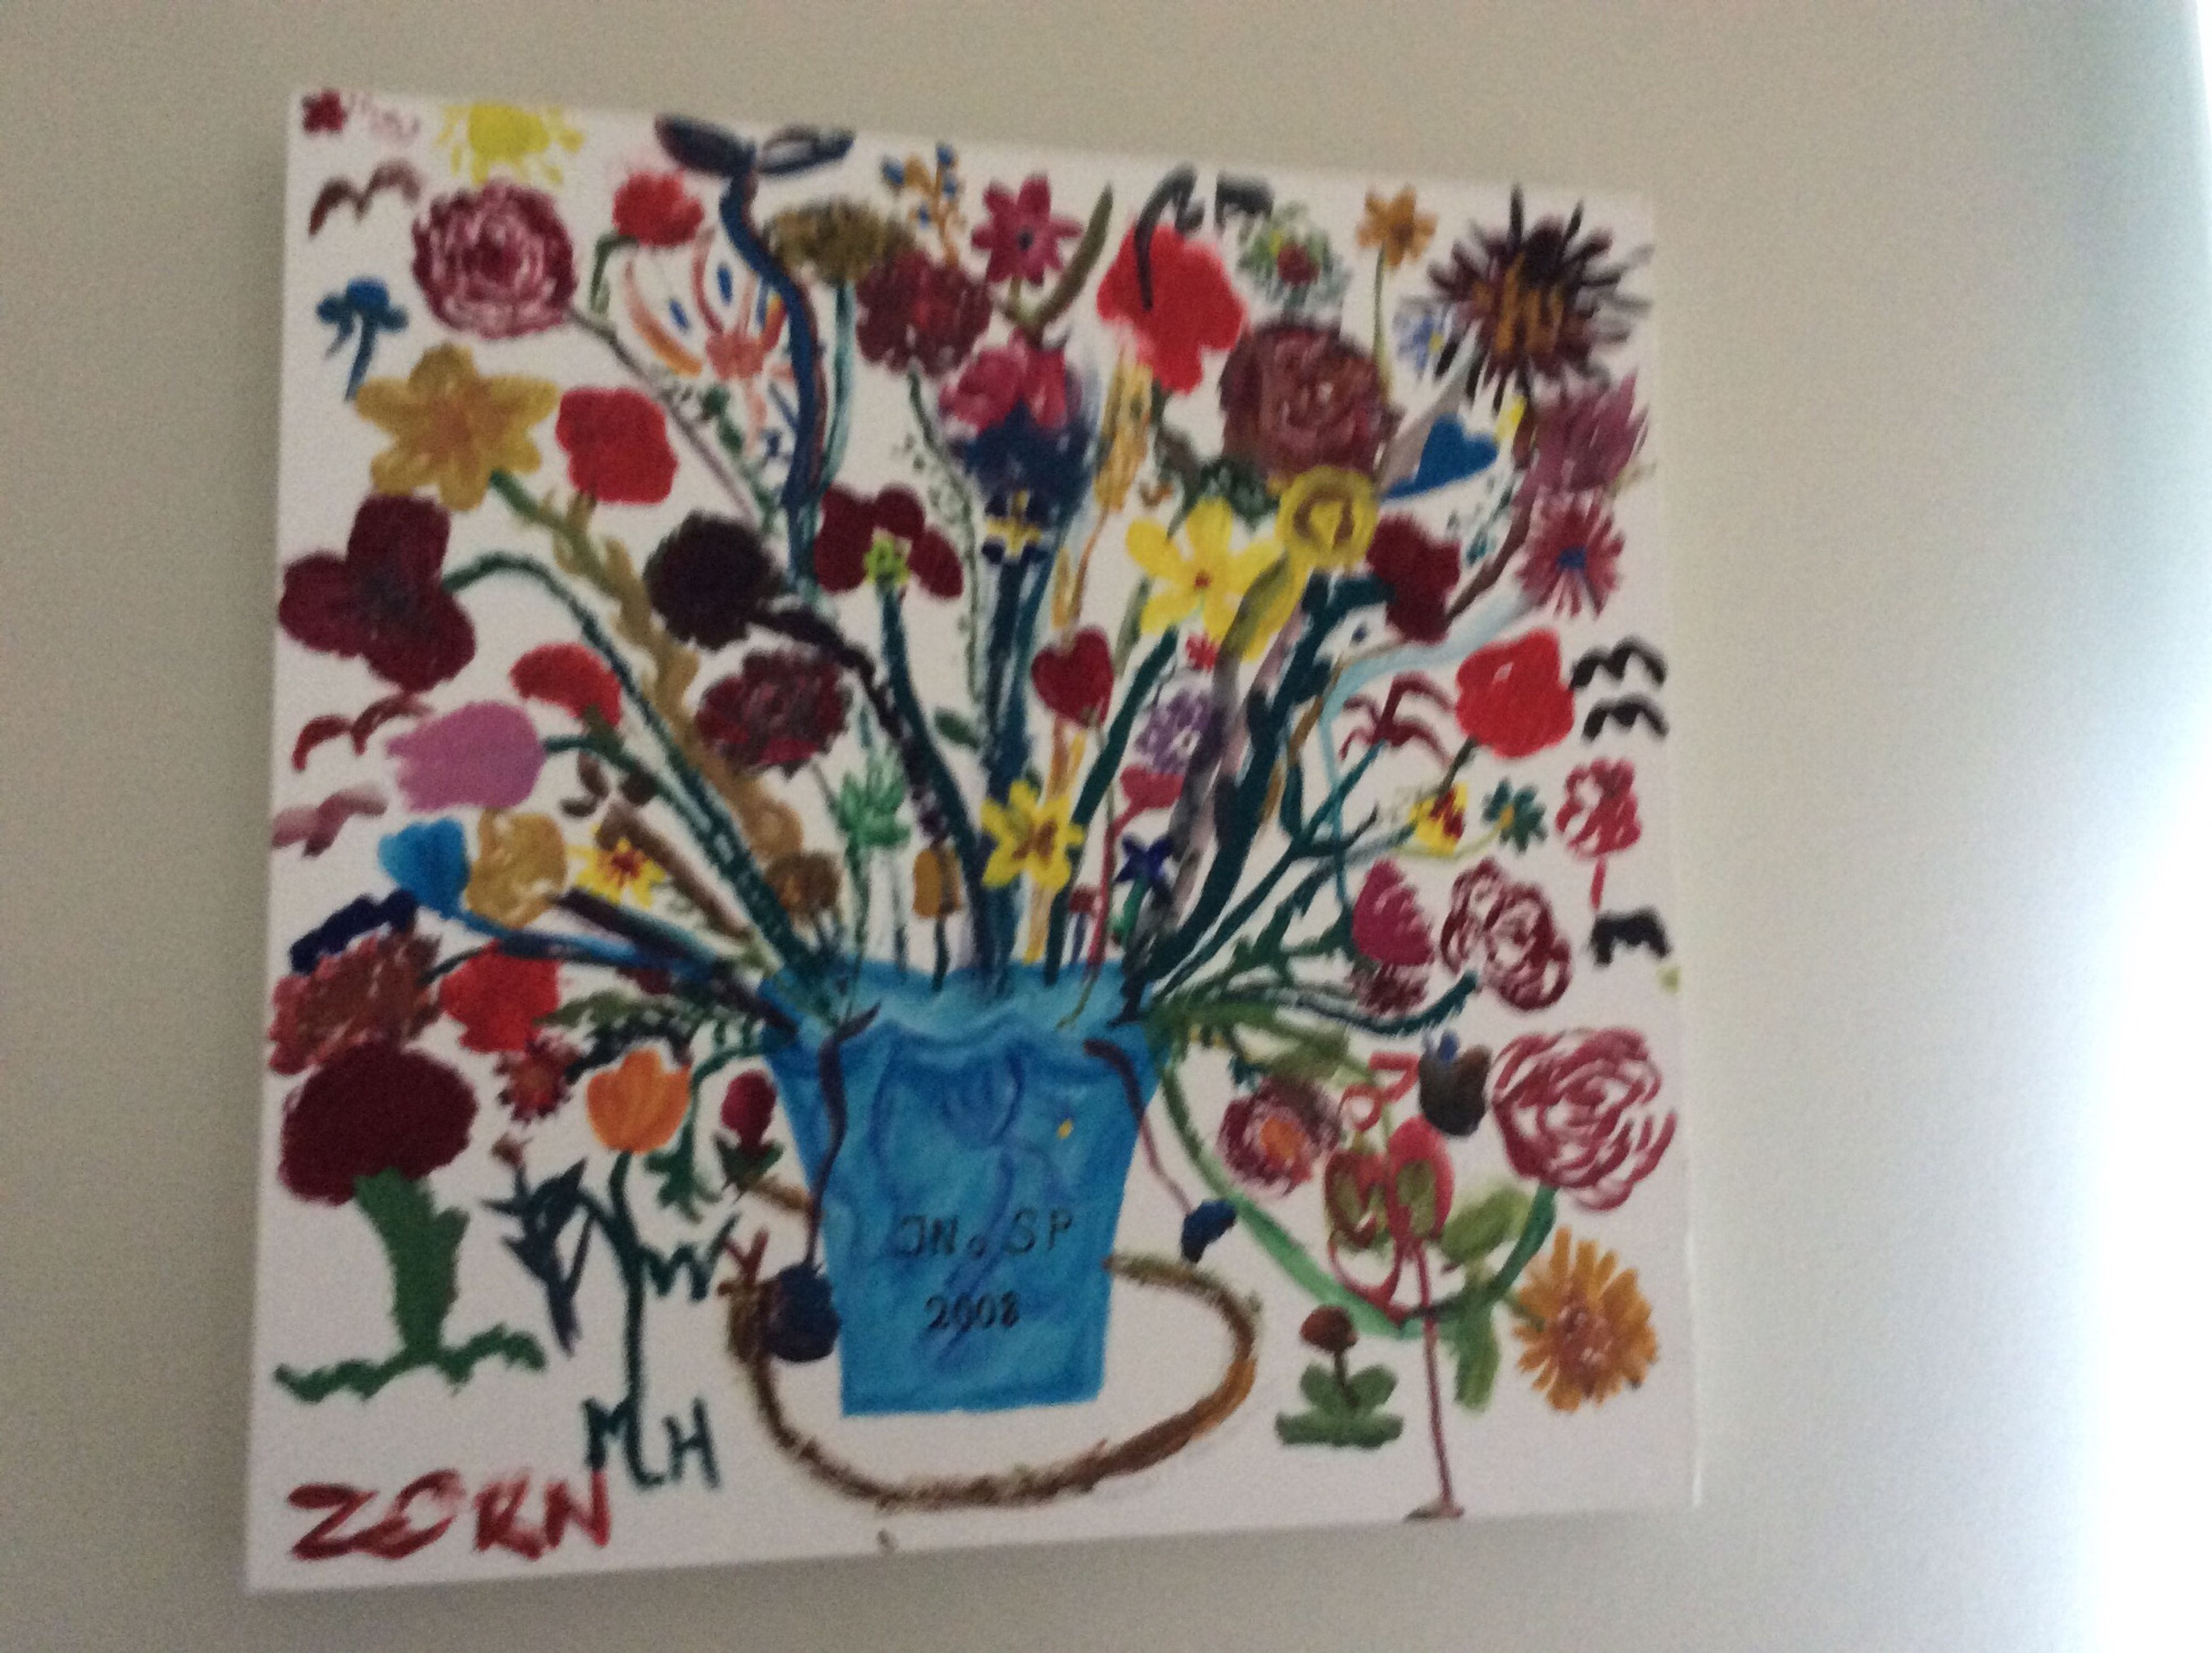 indoors, creativity, art and craft, art, multi colored, still life, decoration, close-up, table, floral pattern, animal representation, wall - building feature, variation, design, home interior, flower, no people, paper, colorful, painting